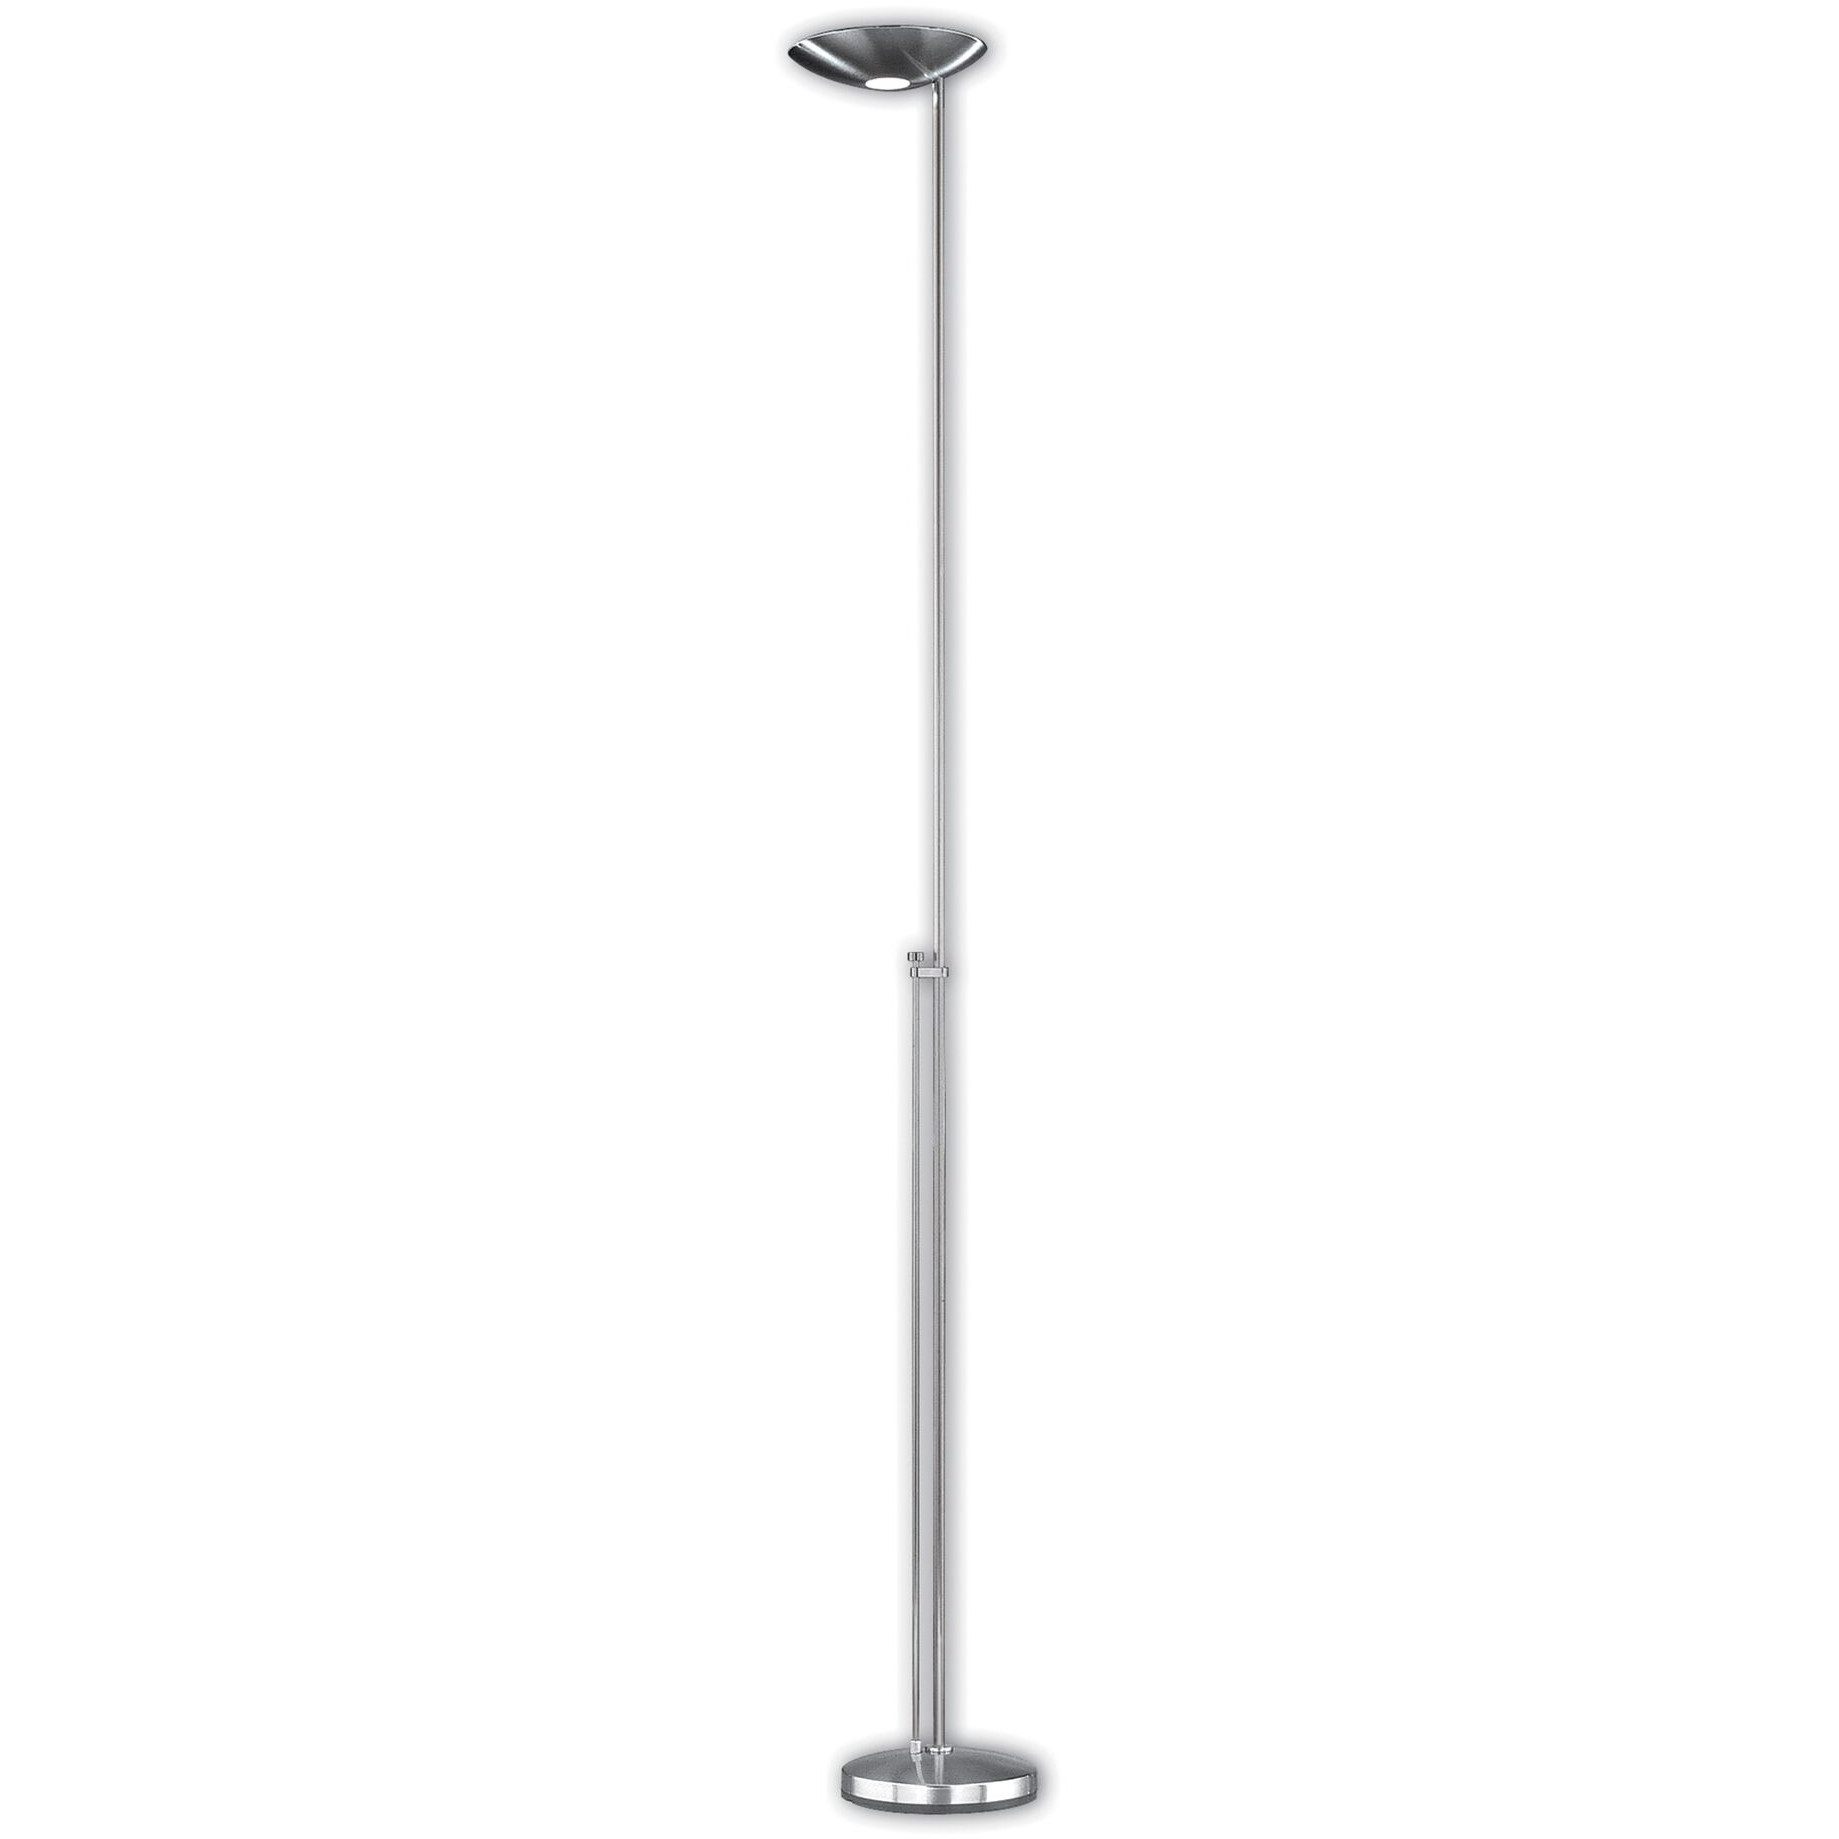 p1129 torchiere floor lamp by estiluz p112937 - Halogen Floor Lamp